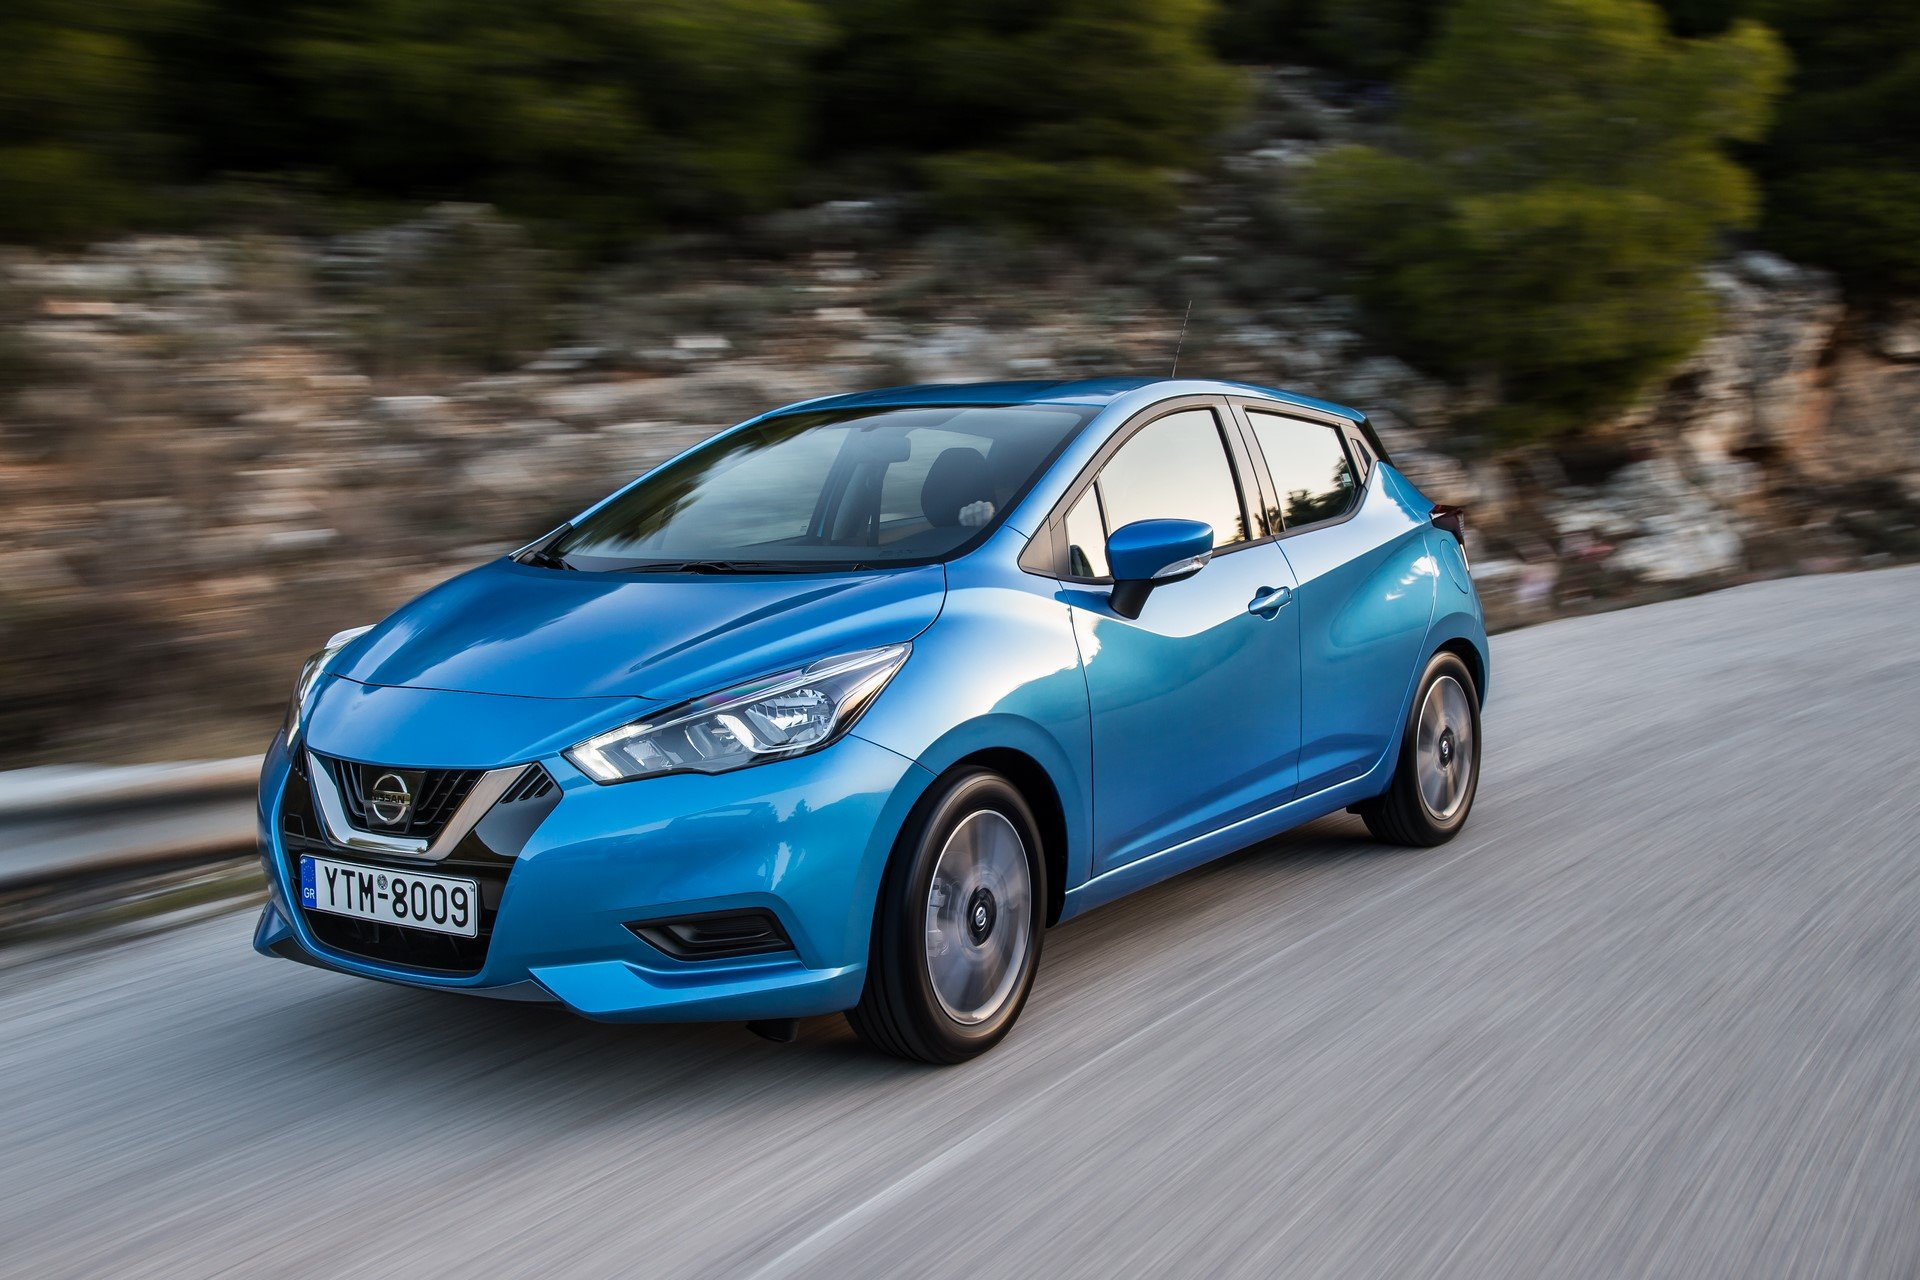 Nissan Micra 2019 Greek (66)